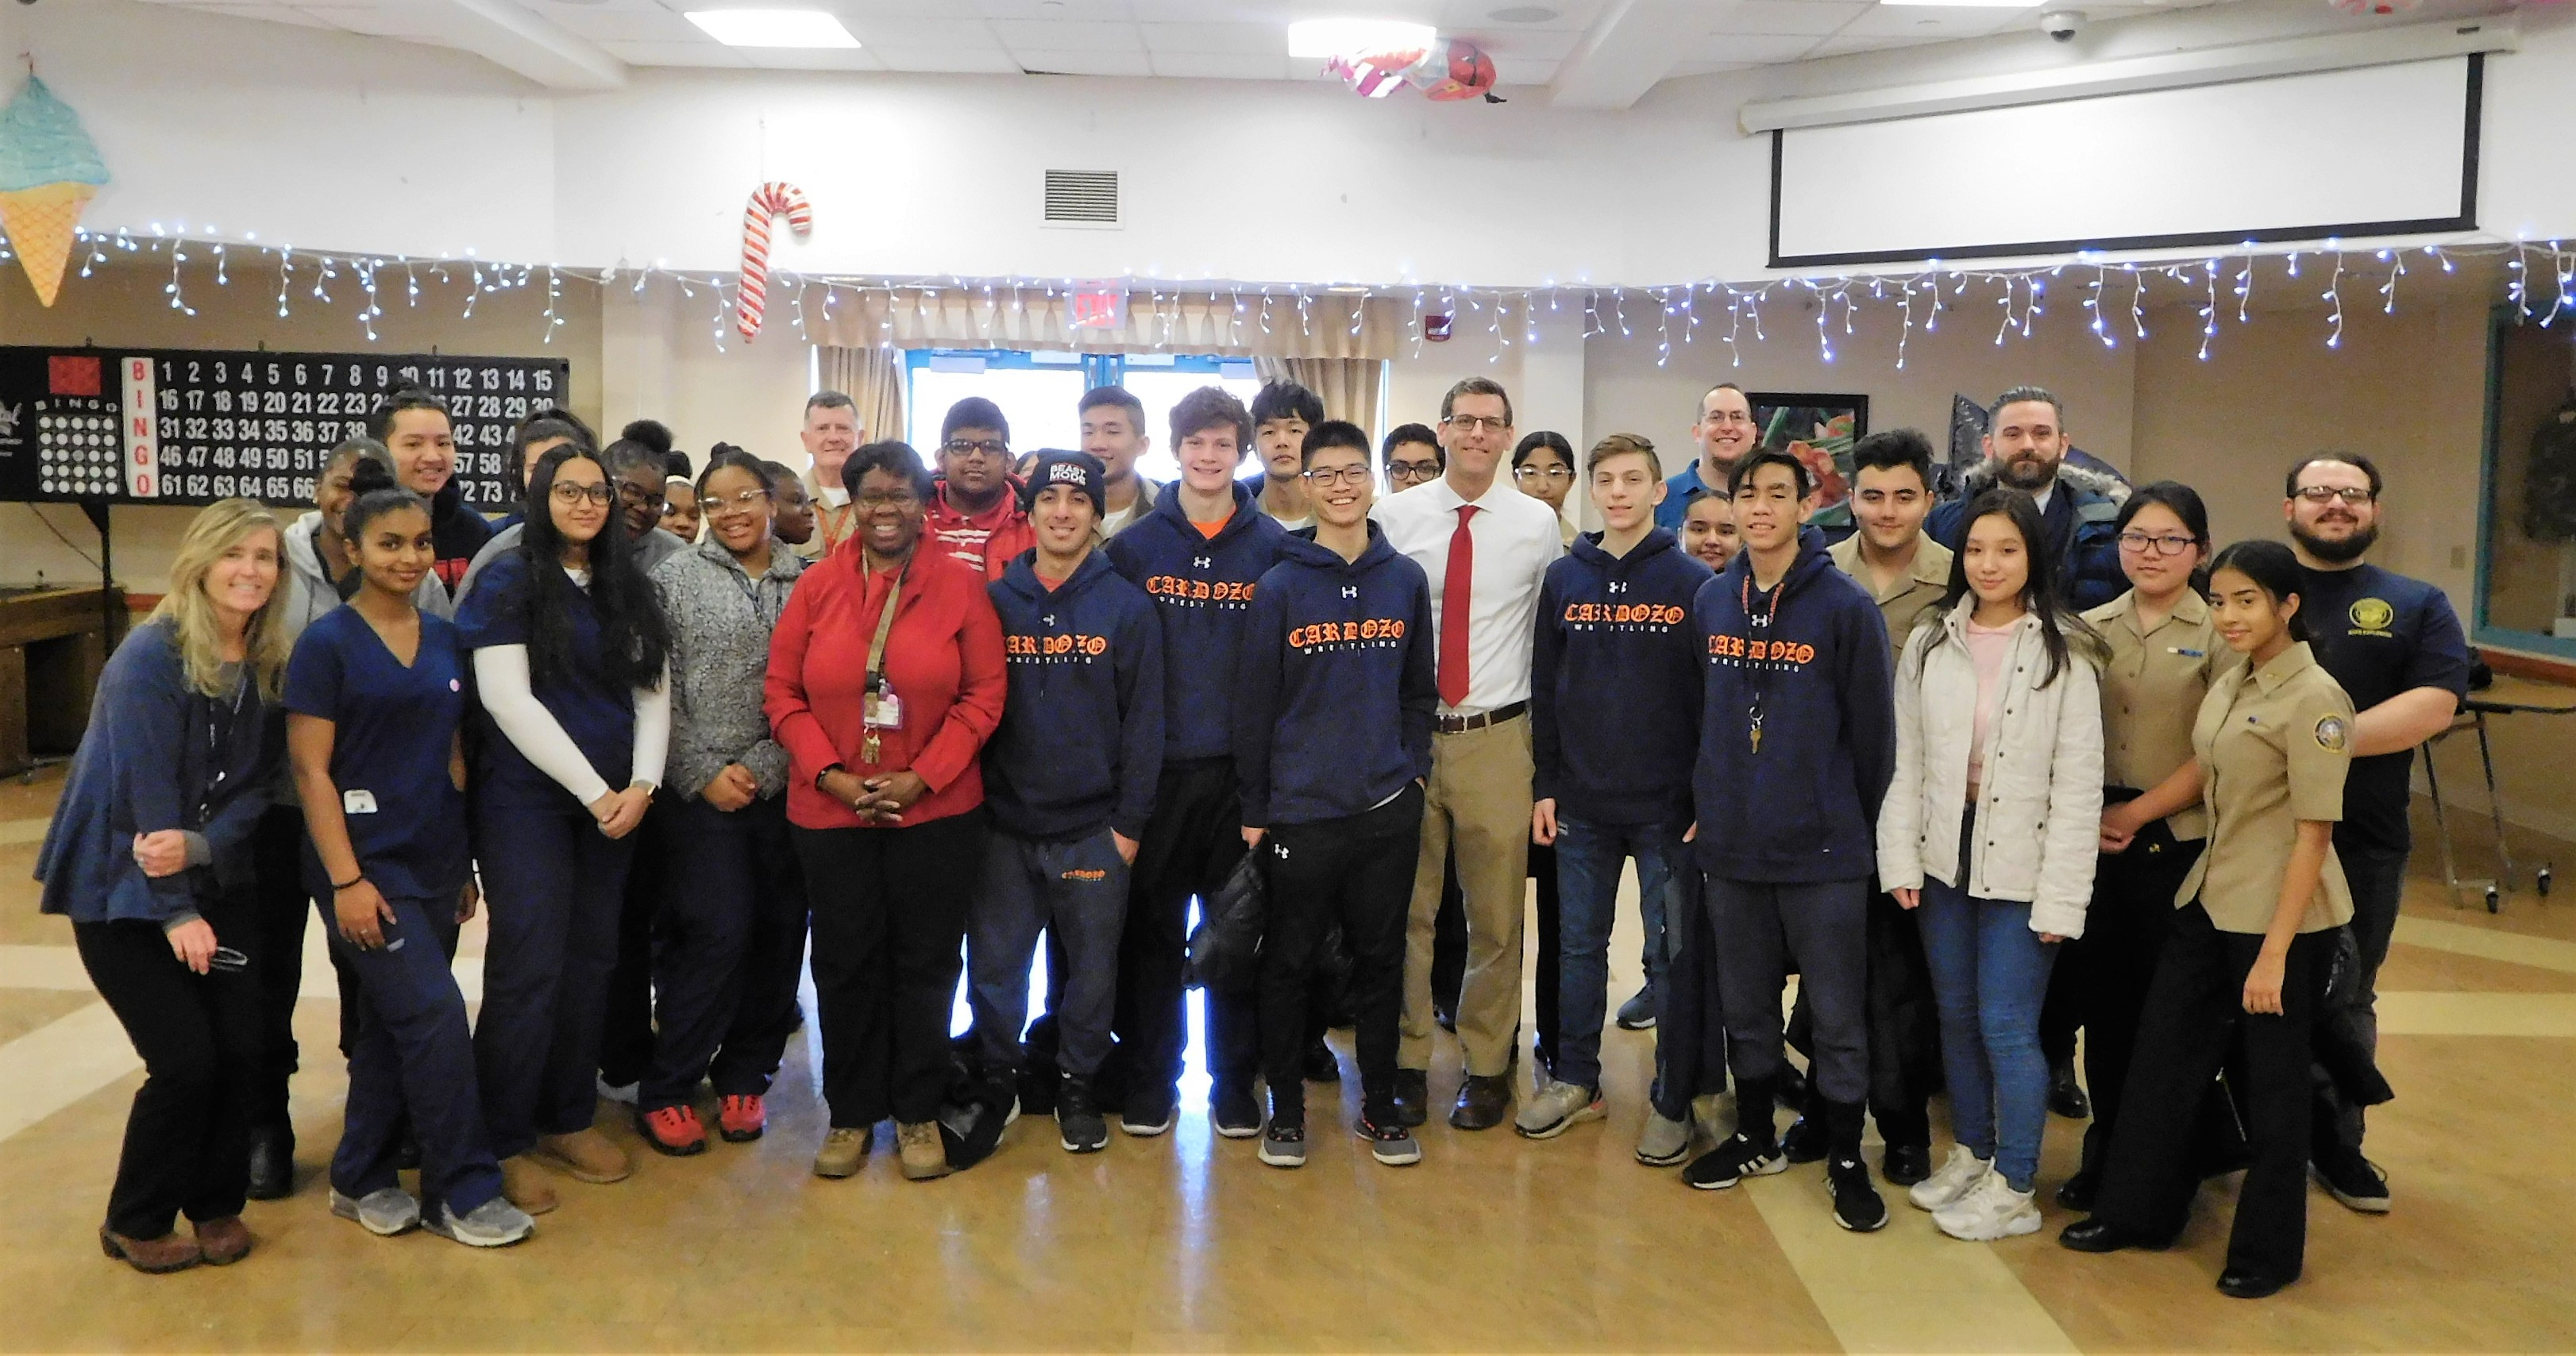 On December 20, 2019, Assemblyman Braunstein, his staff, students and faculty from Benjamin N. Cardozo High School, and students from Campus Magnet Institute for Health Professions at Cambria Heights